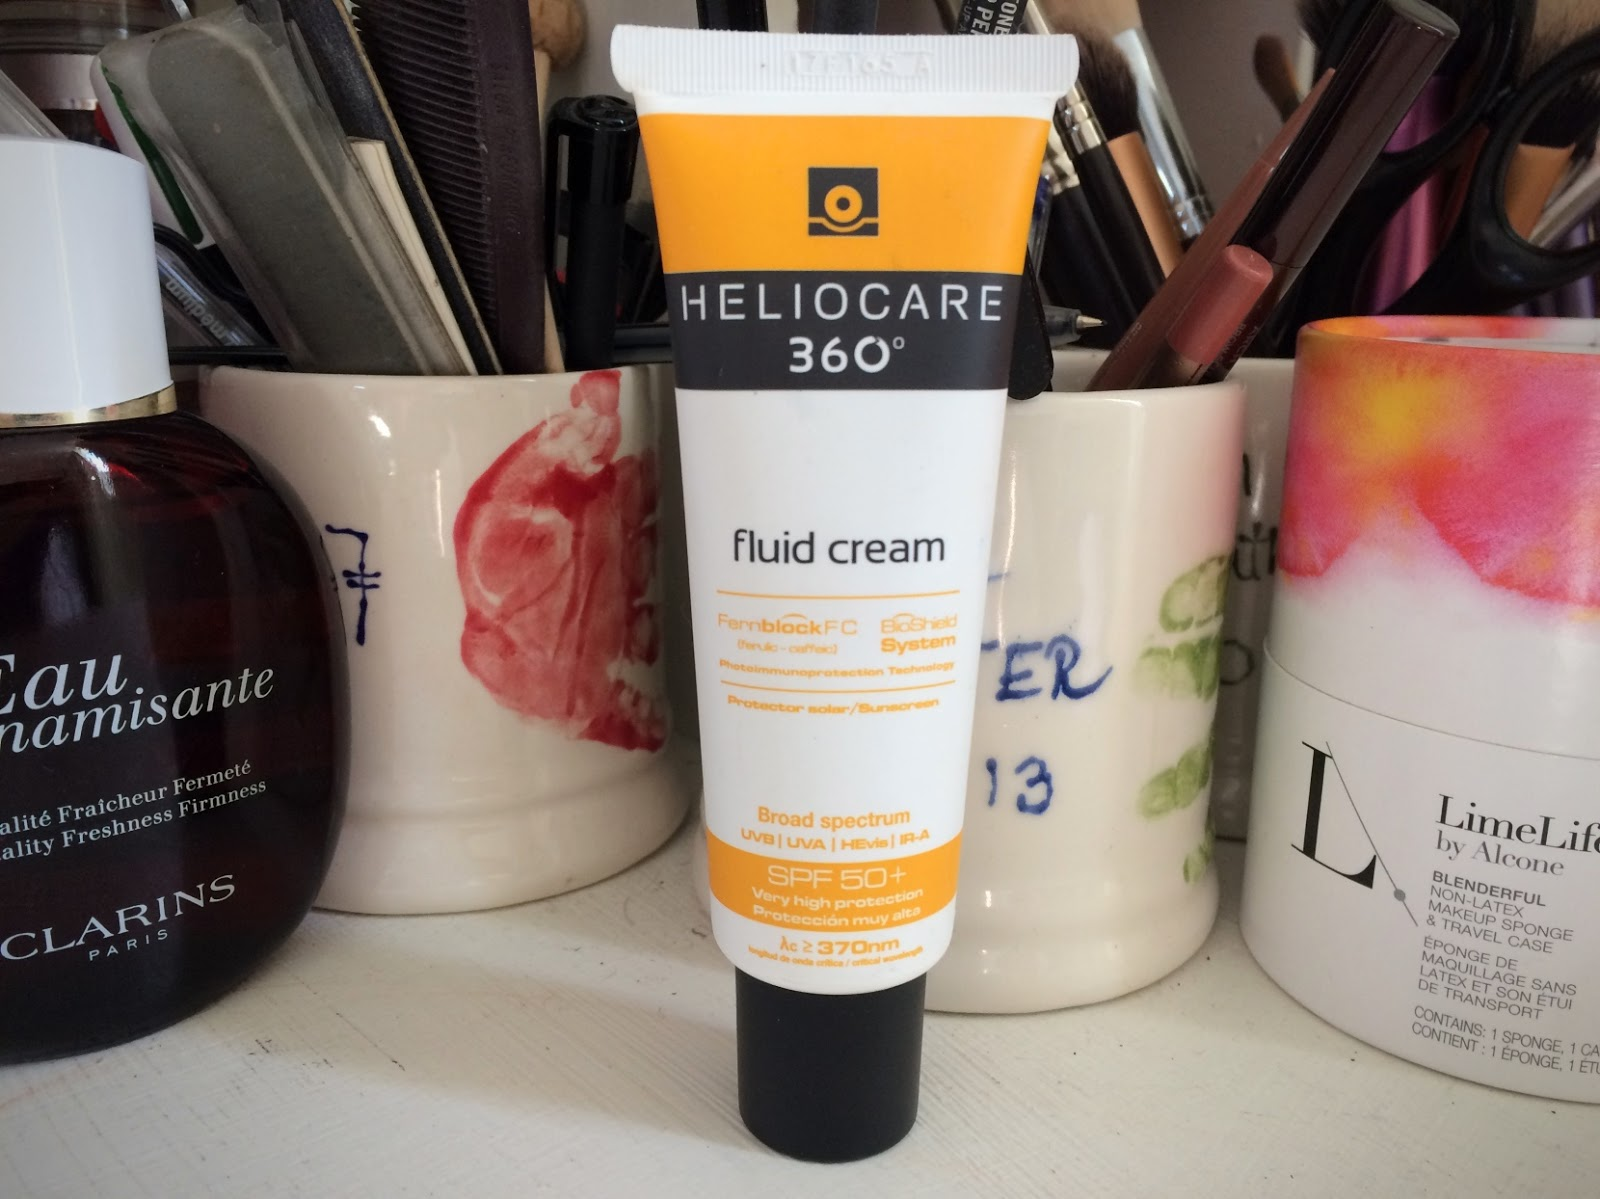 Helicare 360 Fluid Cream